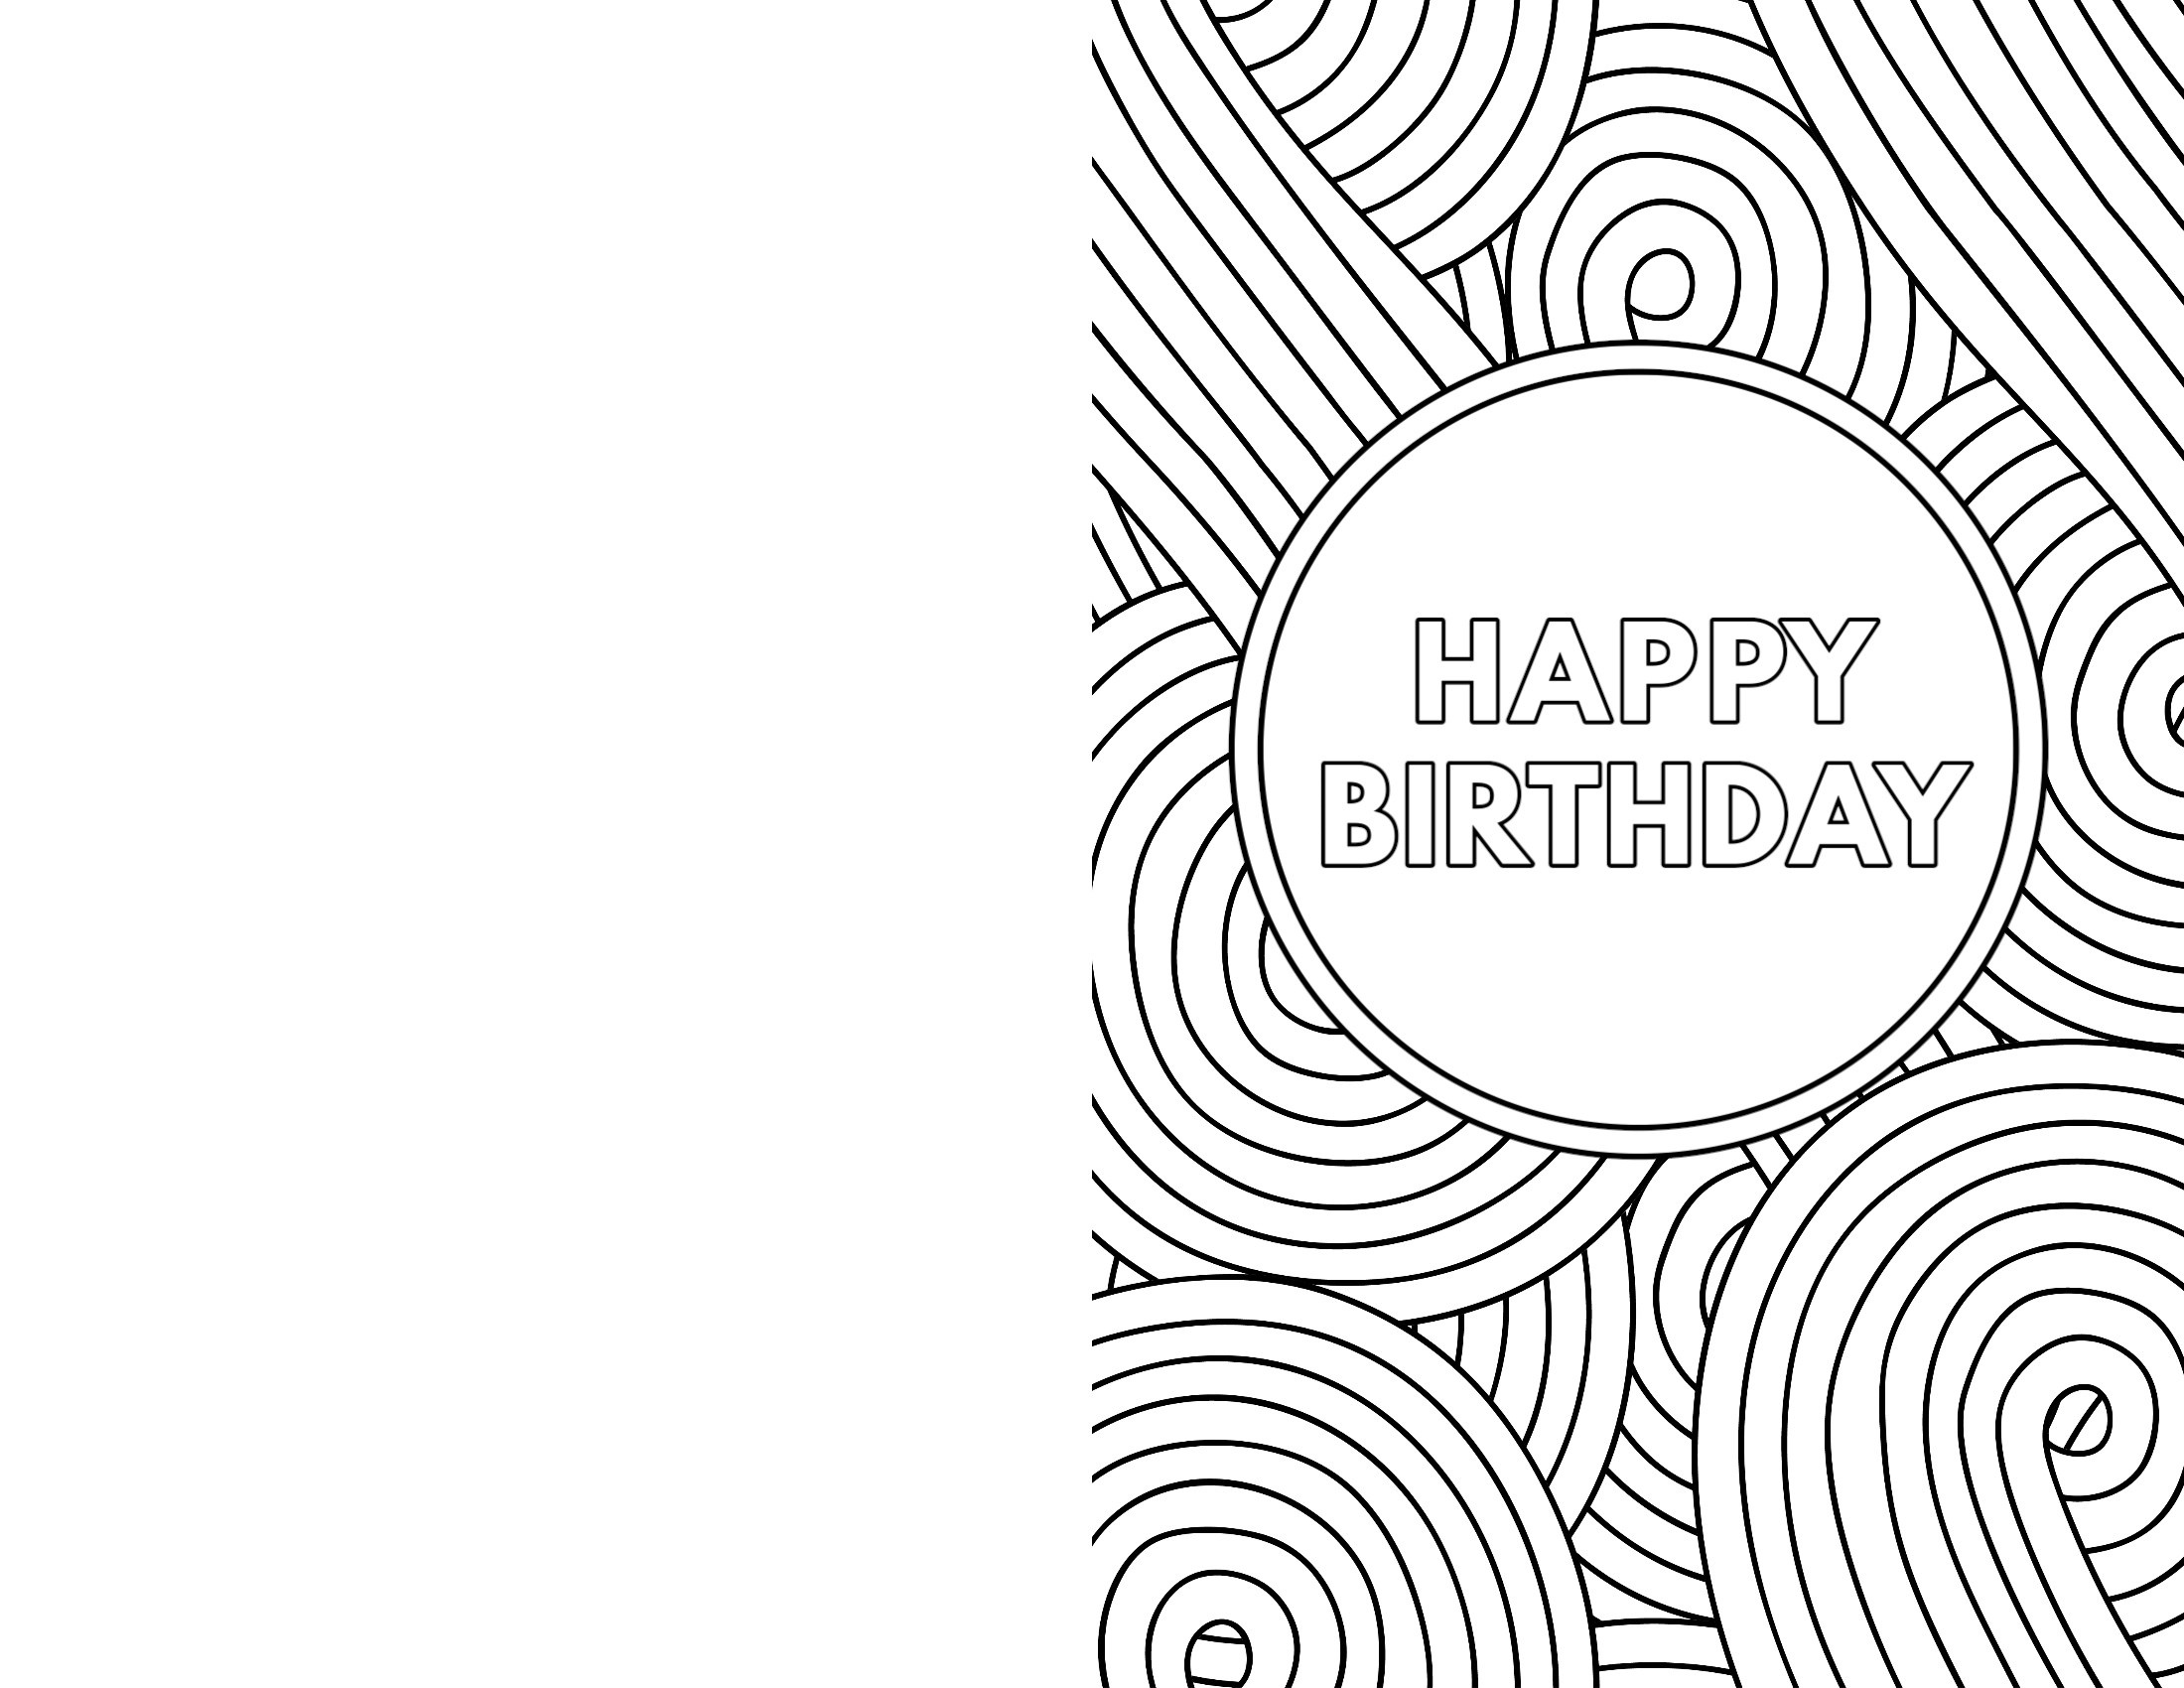 Free Printable Birthday Cards - Paper Trail Design - Free Printable Birthday Cards To Color